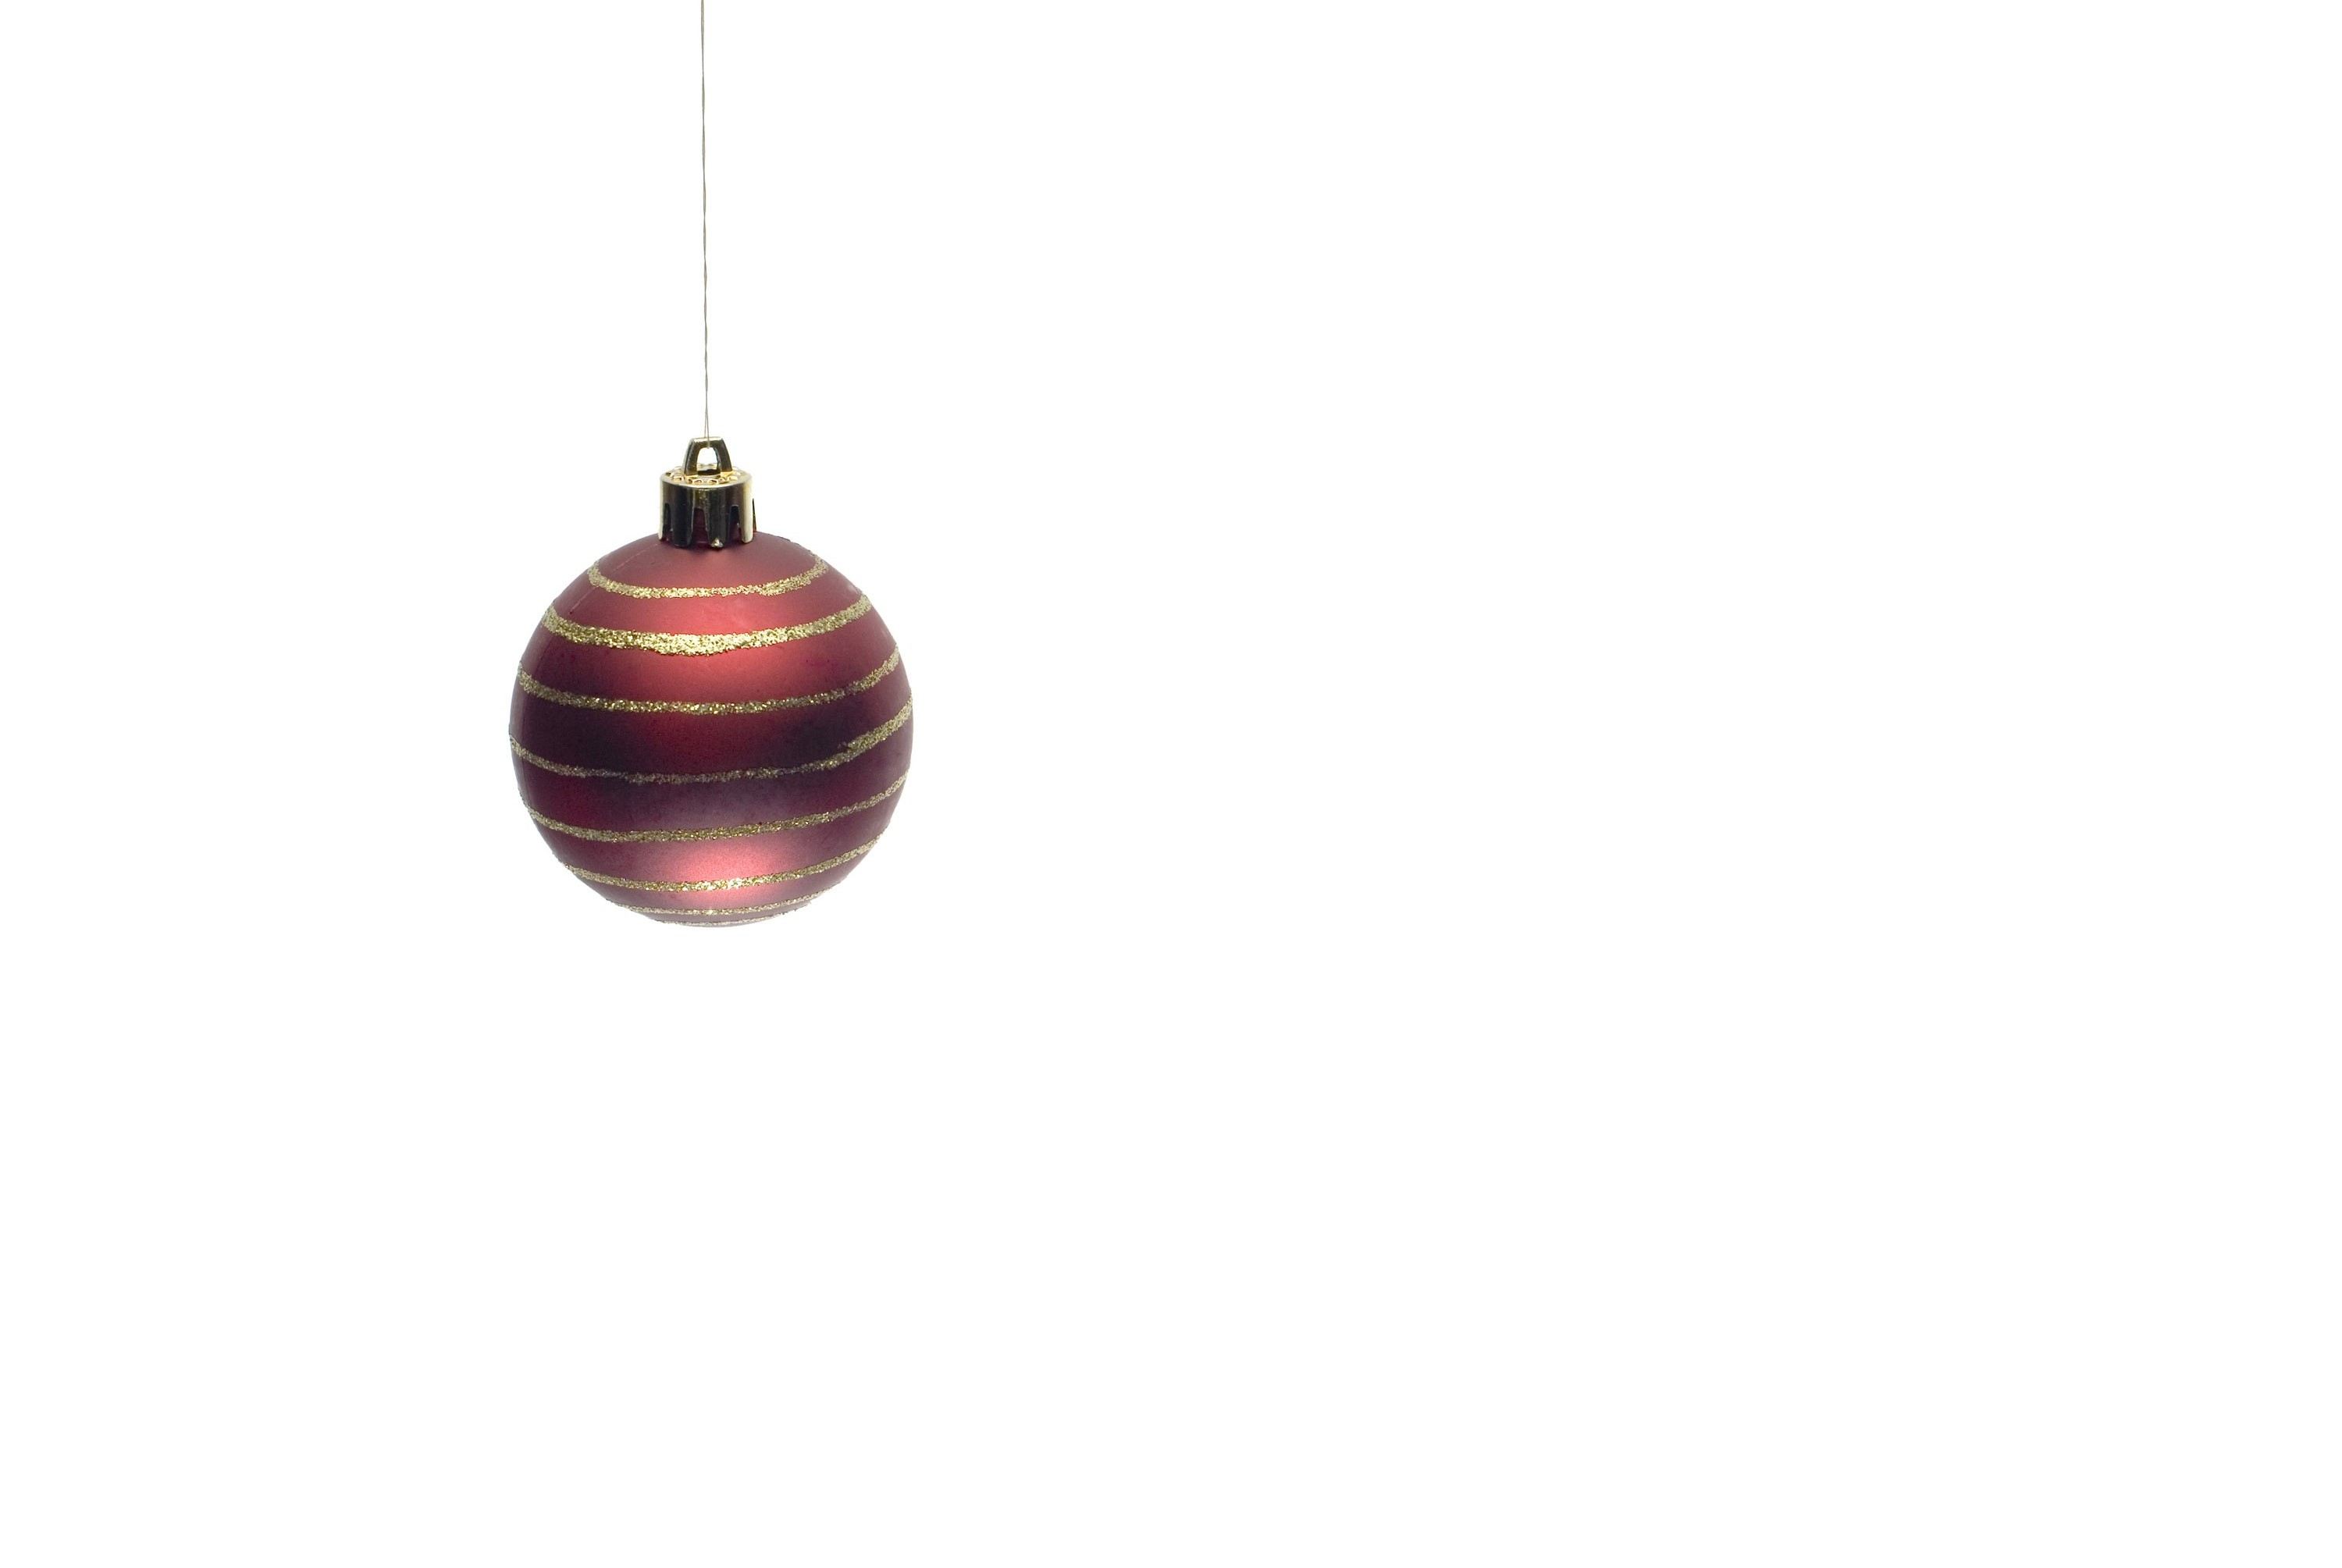 Photo of Hanging Ornament | Free christmas images